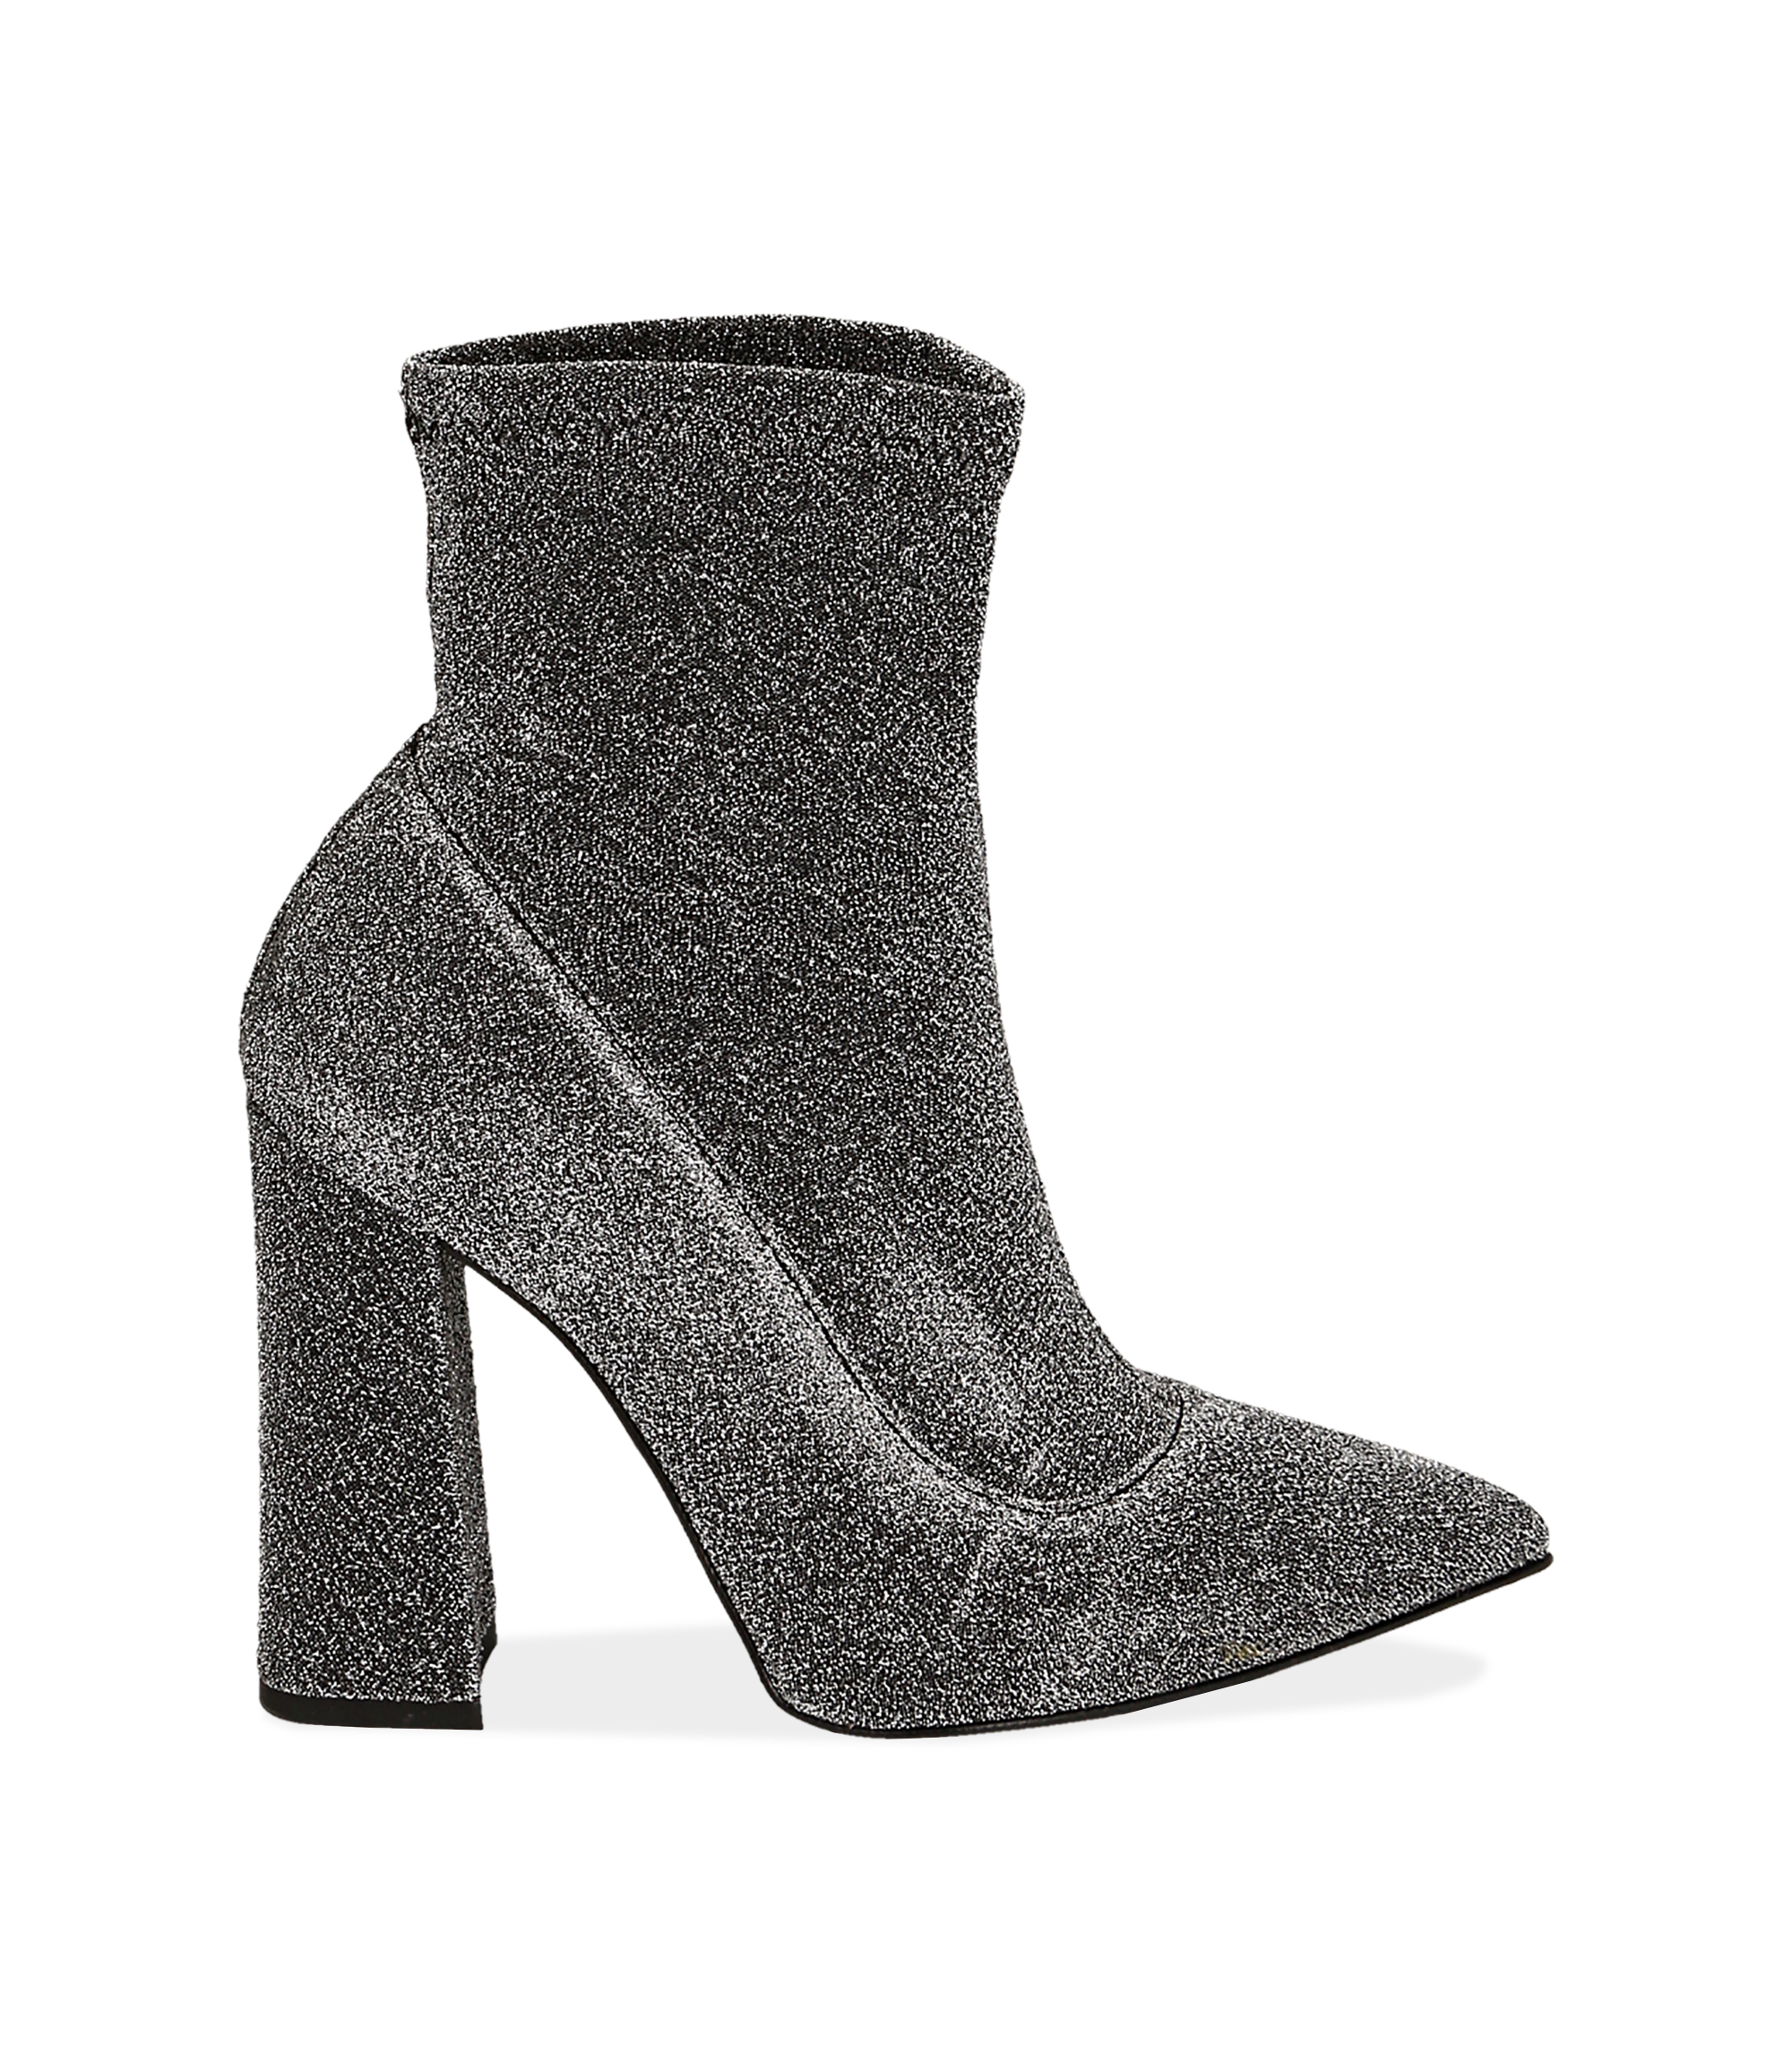 Ankle boots argento in lamè